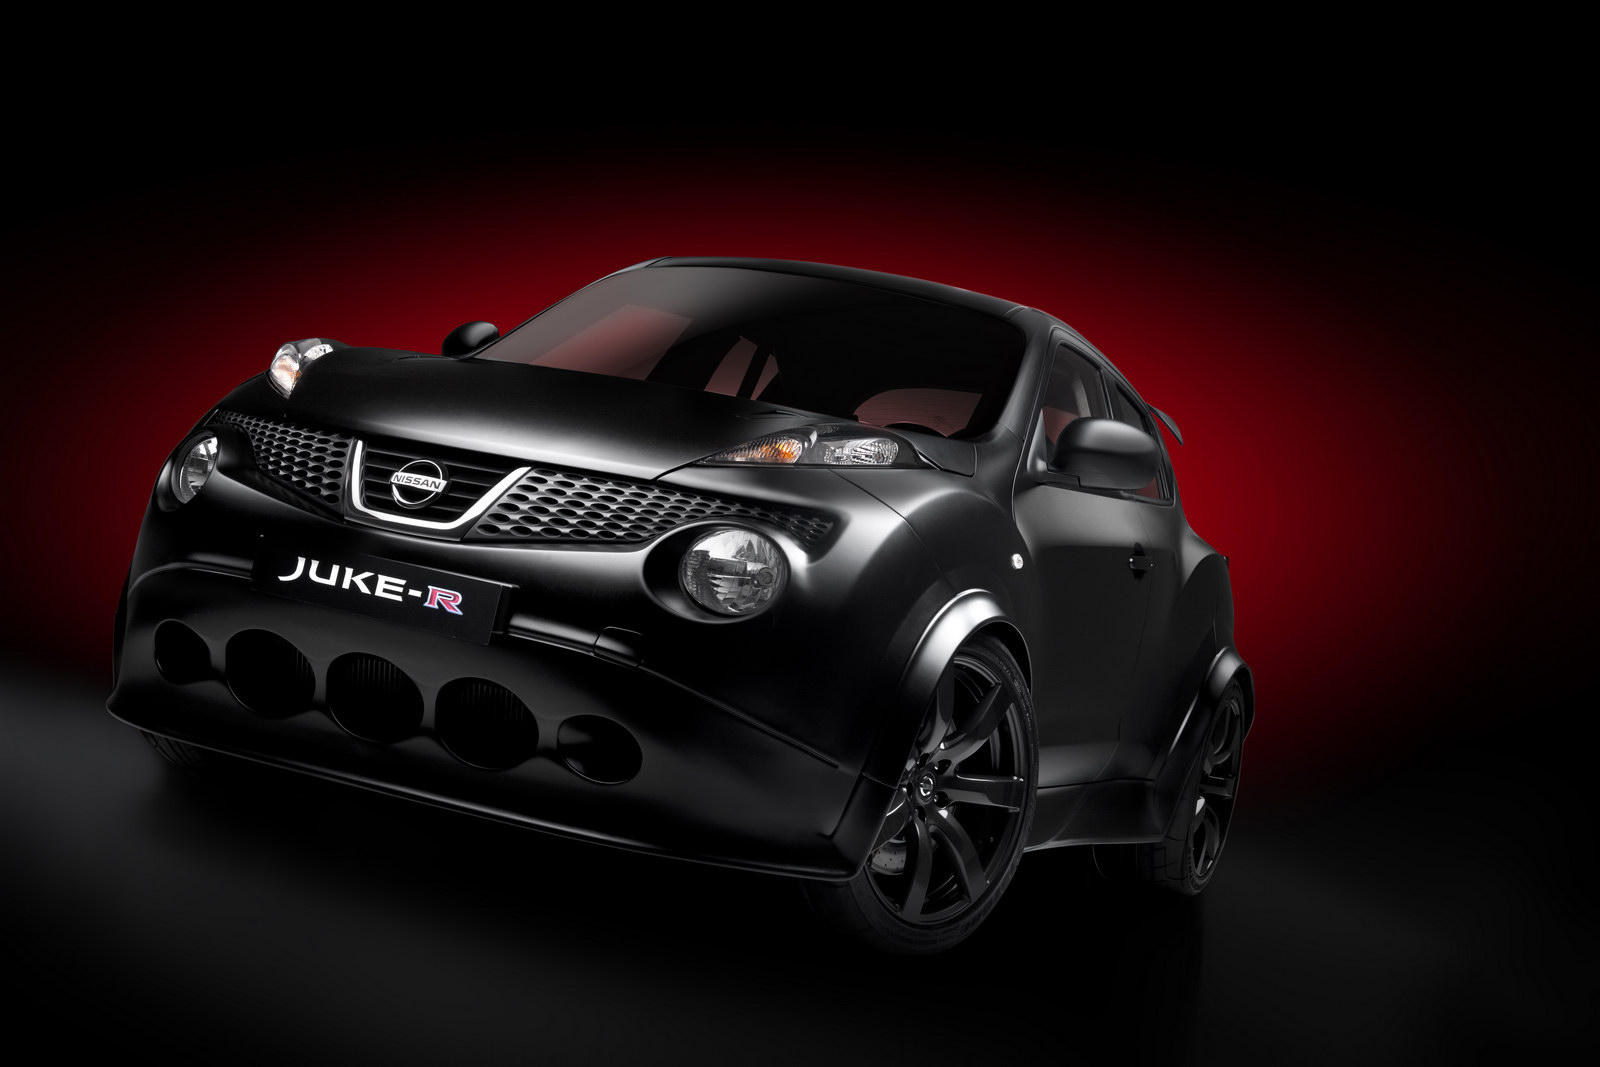 Nissan 480hp Juke R 2011 Nissans 480HP Juke R Finally Revealed in Photos and Videos